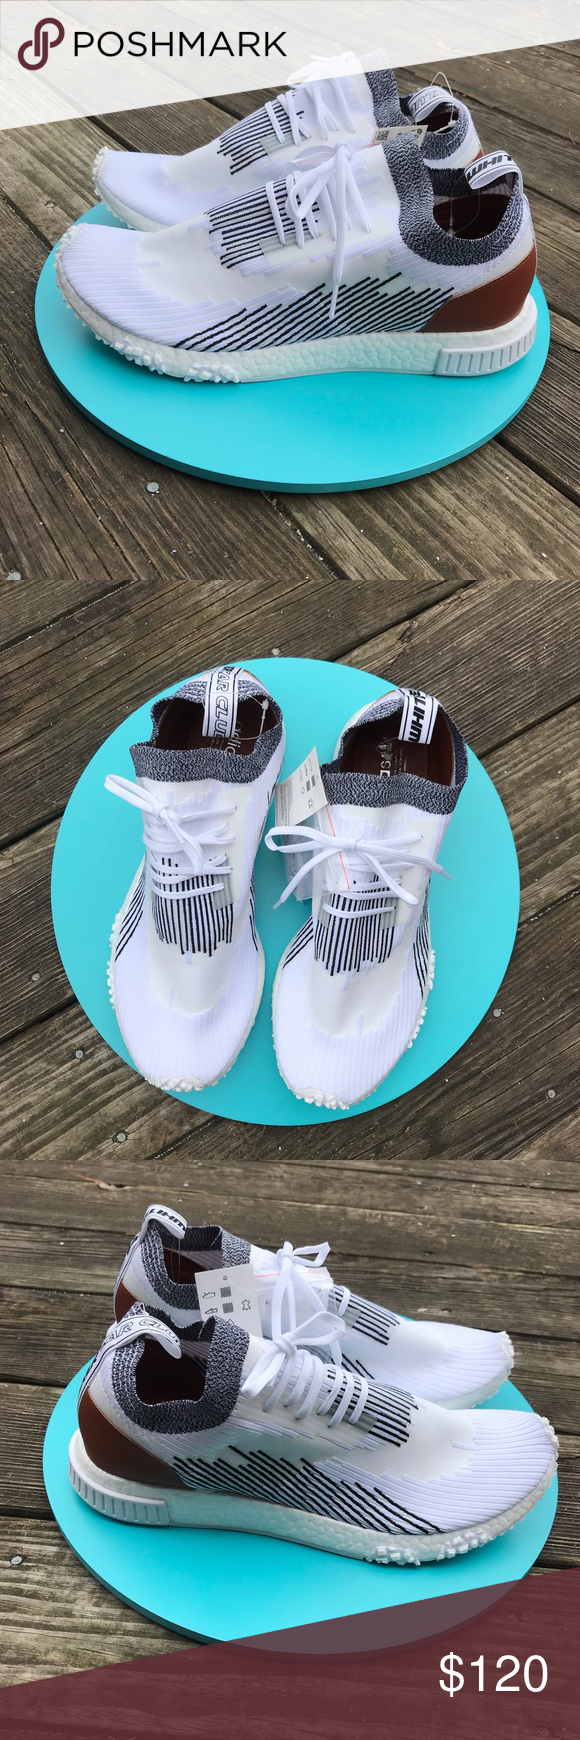 5738545ec81f Adidas NMD Racer Whitaker Group Men s 13 Brand new without original box  Size 13 No flaws